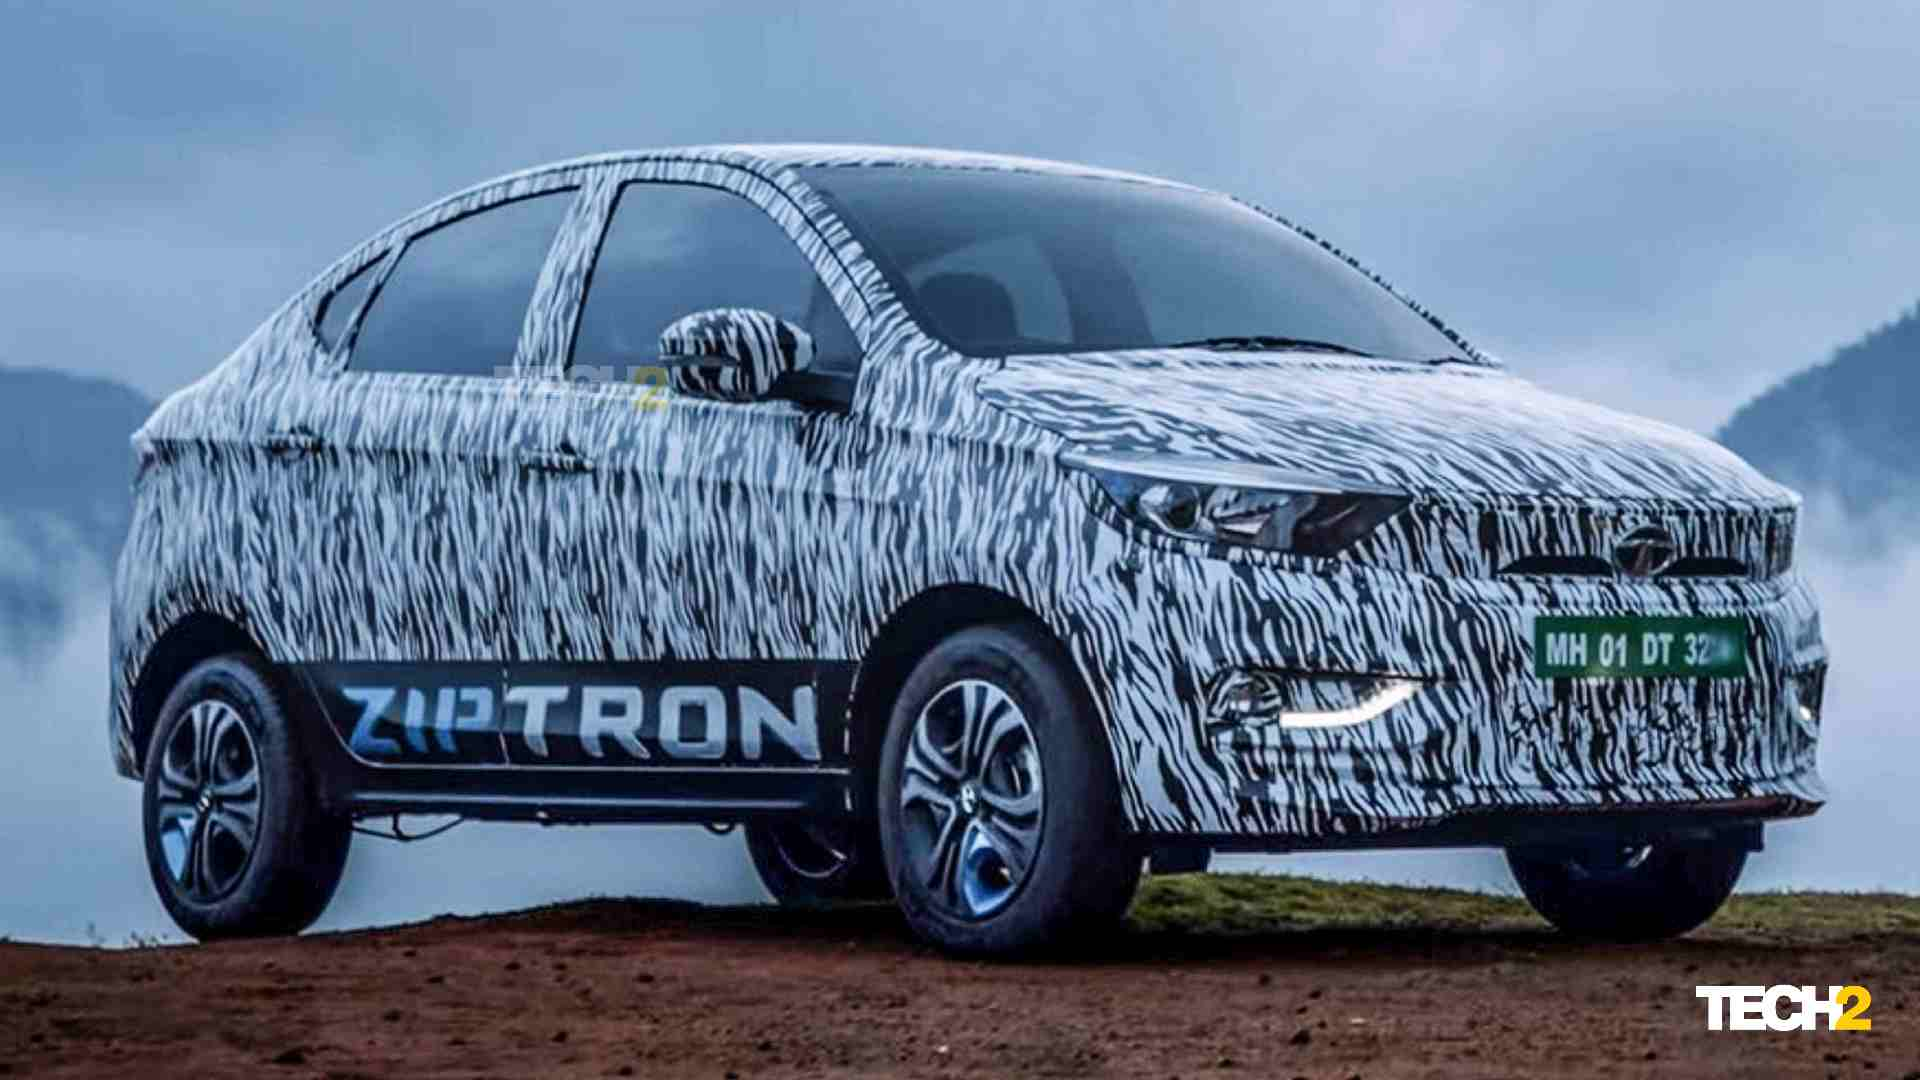 Launch of the revamped compact electronic sedan, Price announcement starts at 11.00 IST-Technology News, Firstpost